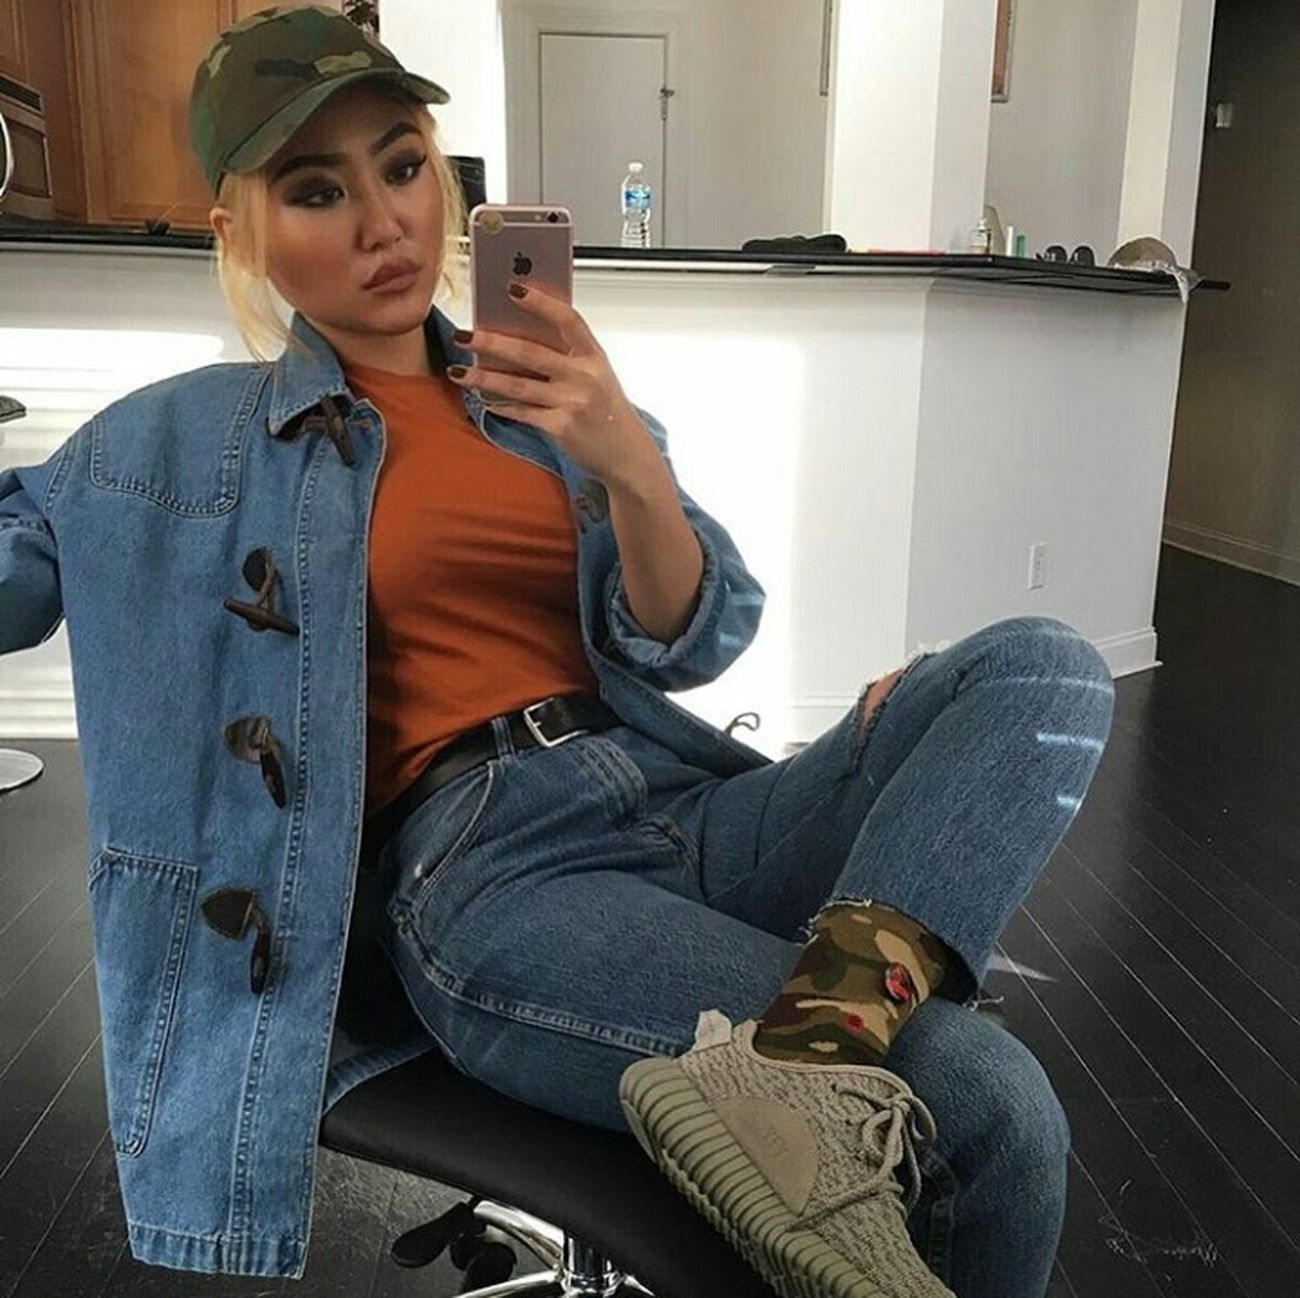 Photography Urban Fashion Urbanstyle Model Streetstyle Fashion Street Fashion Aesthetics Gorgeous YeezyBoost350 DenimOnDenim High Waisted Jeans